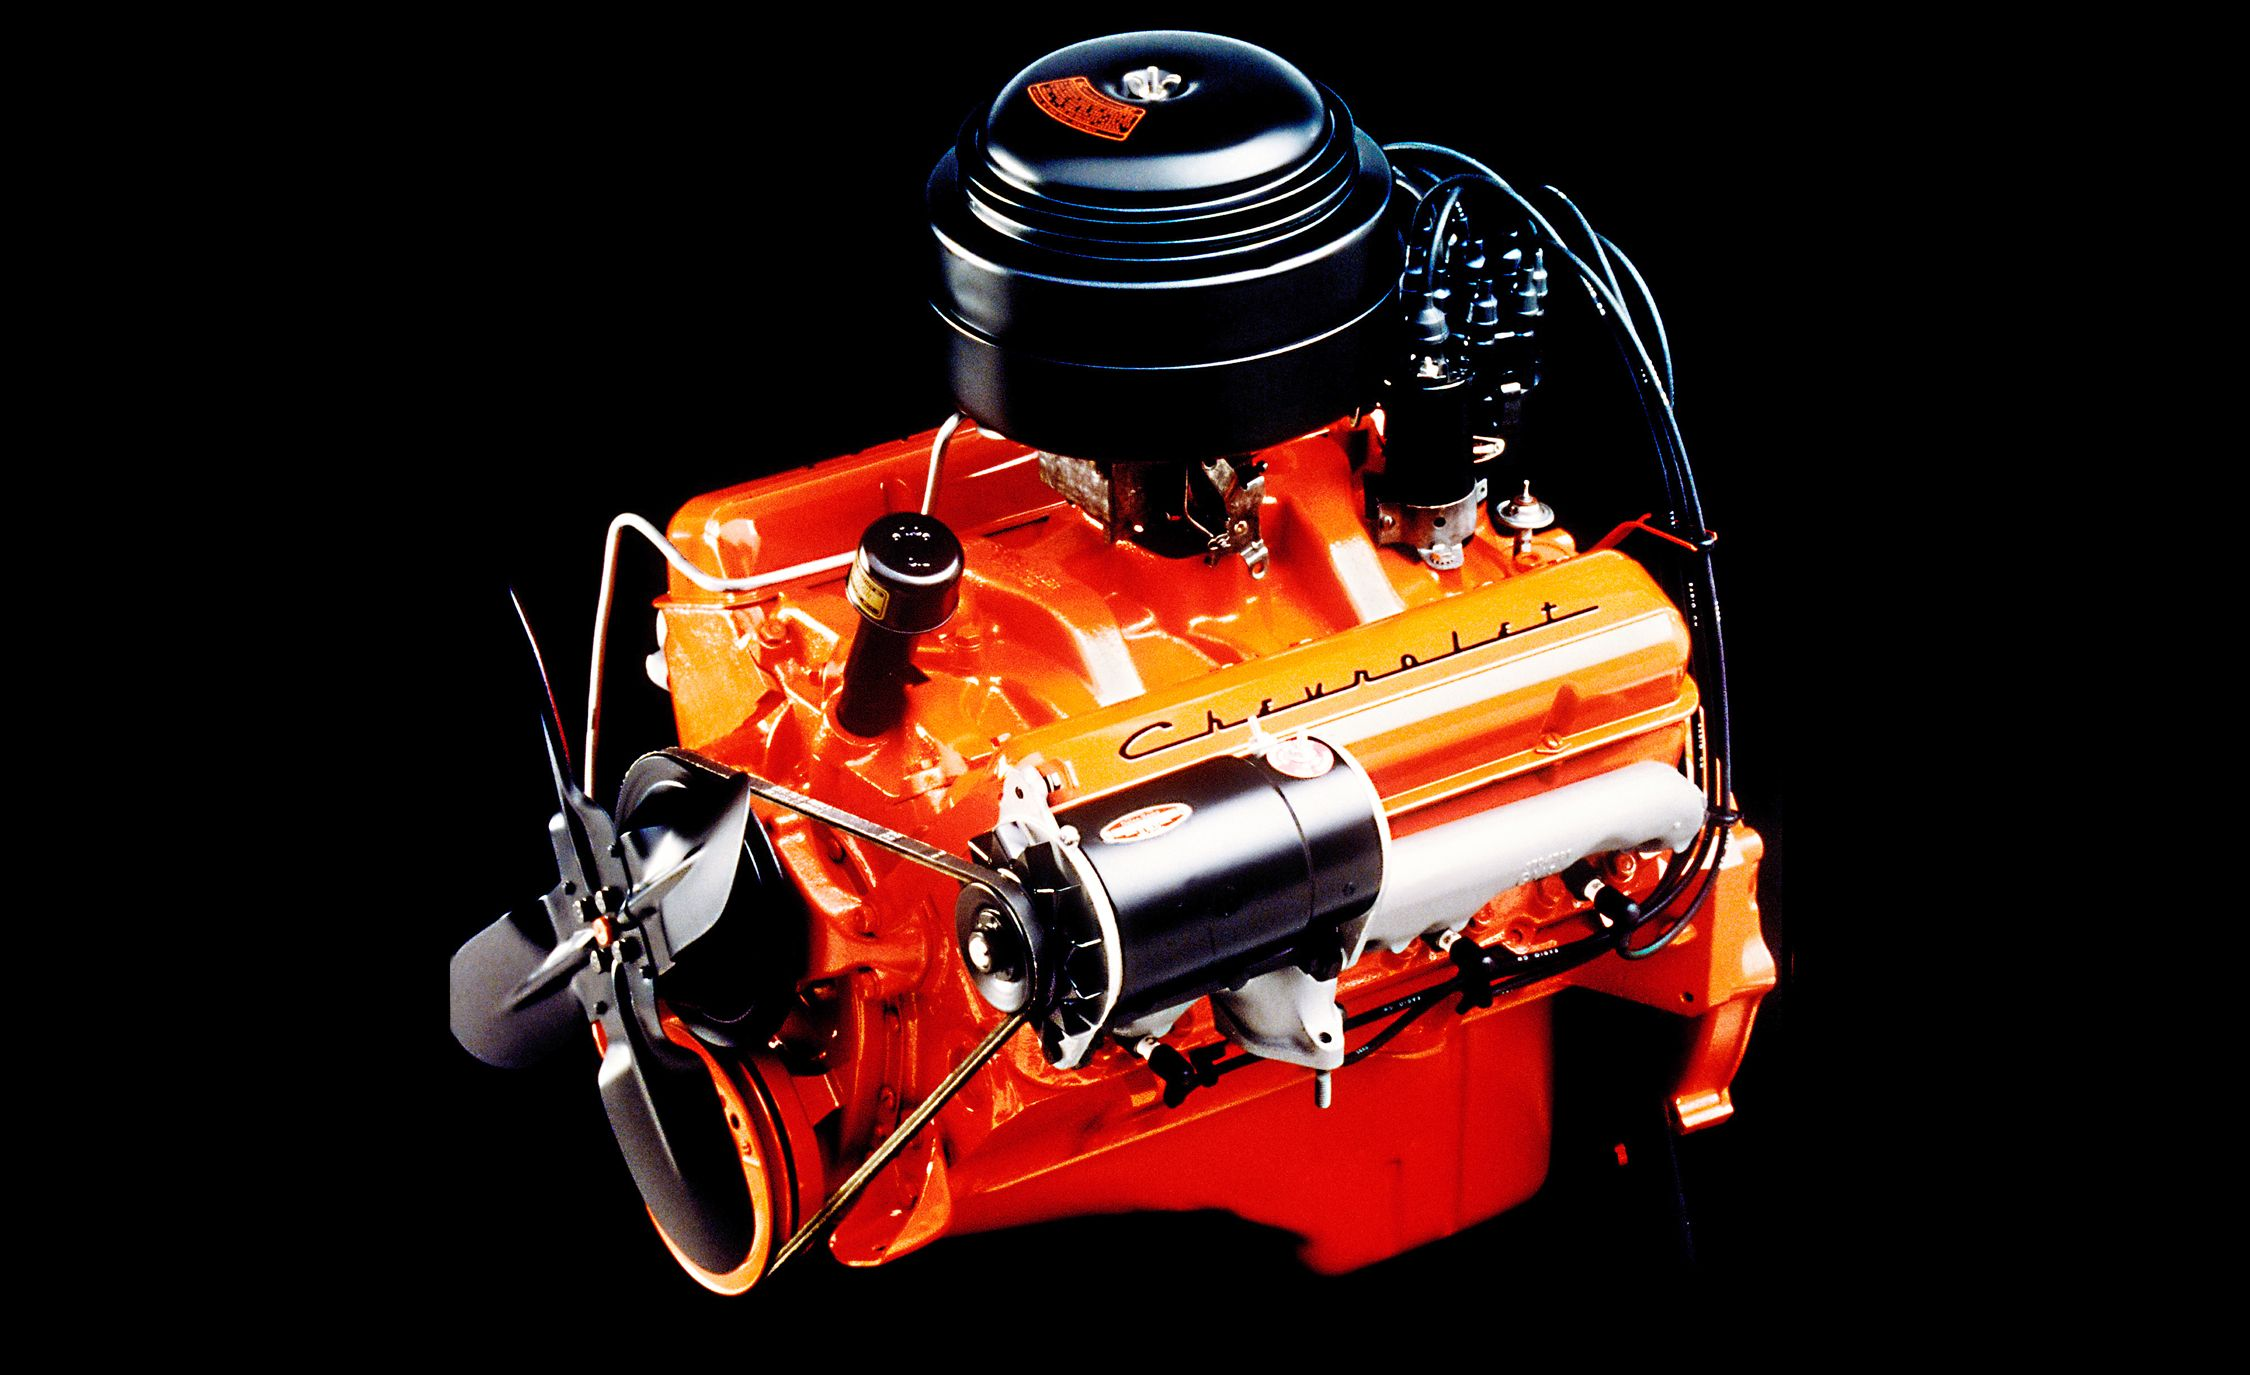 The Best Naturally Aspirated Engines of All Time